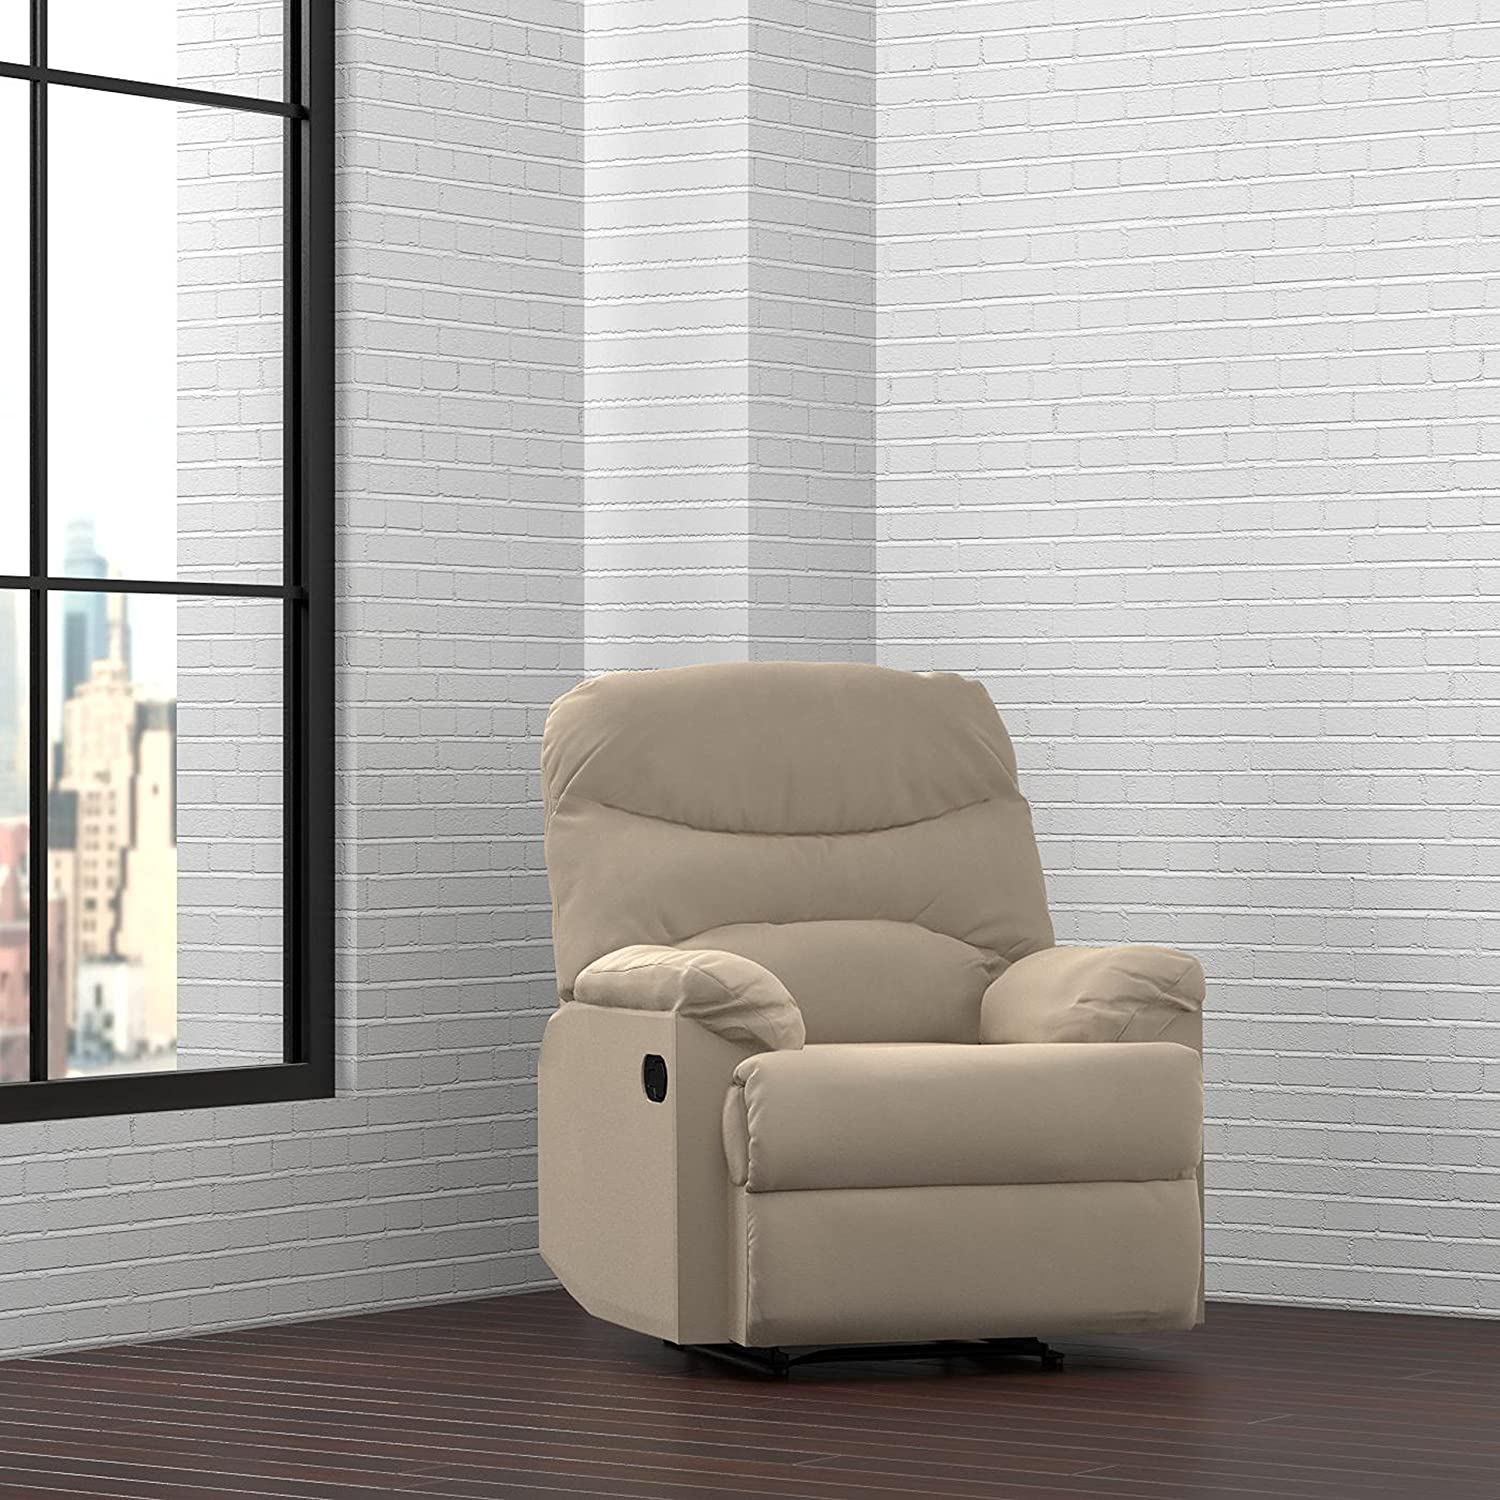 Amazon.com ProLounger Wall Hugger Recliner Chair in Khaki Microfiber Kitchen u0026 Dining & Amazon.com: ProLounger Wall Hugger Recliner Chair in Khaki ... islam-shia.org